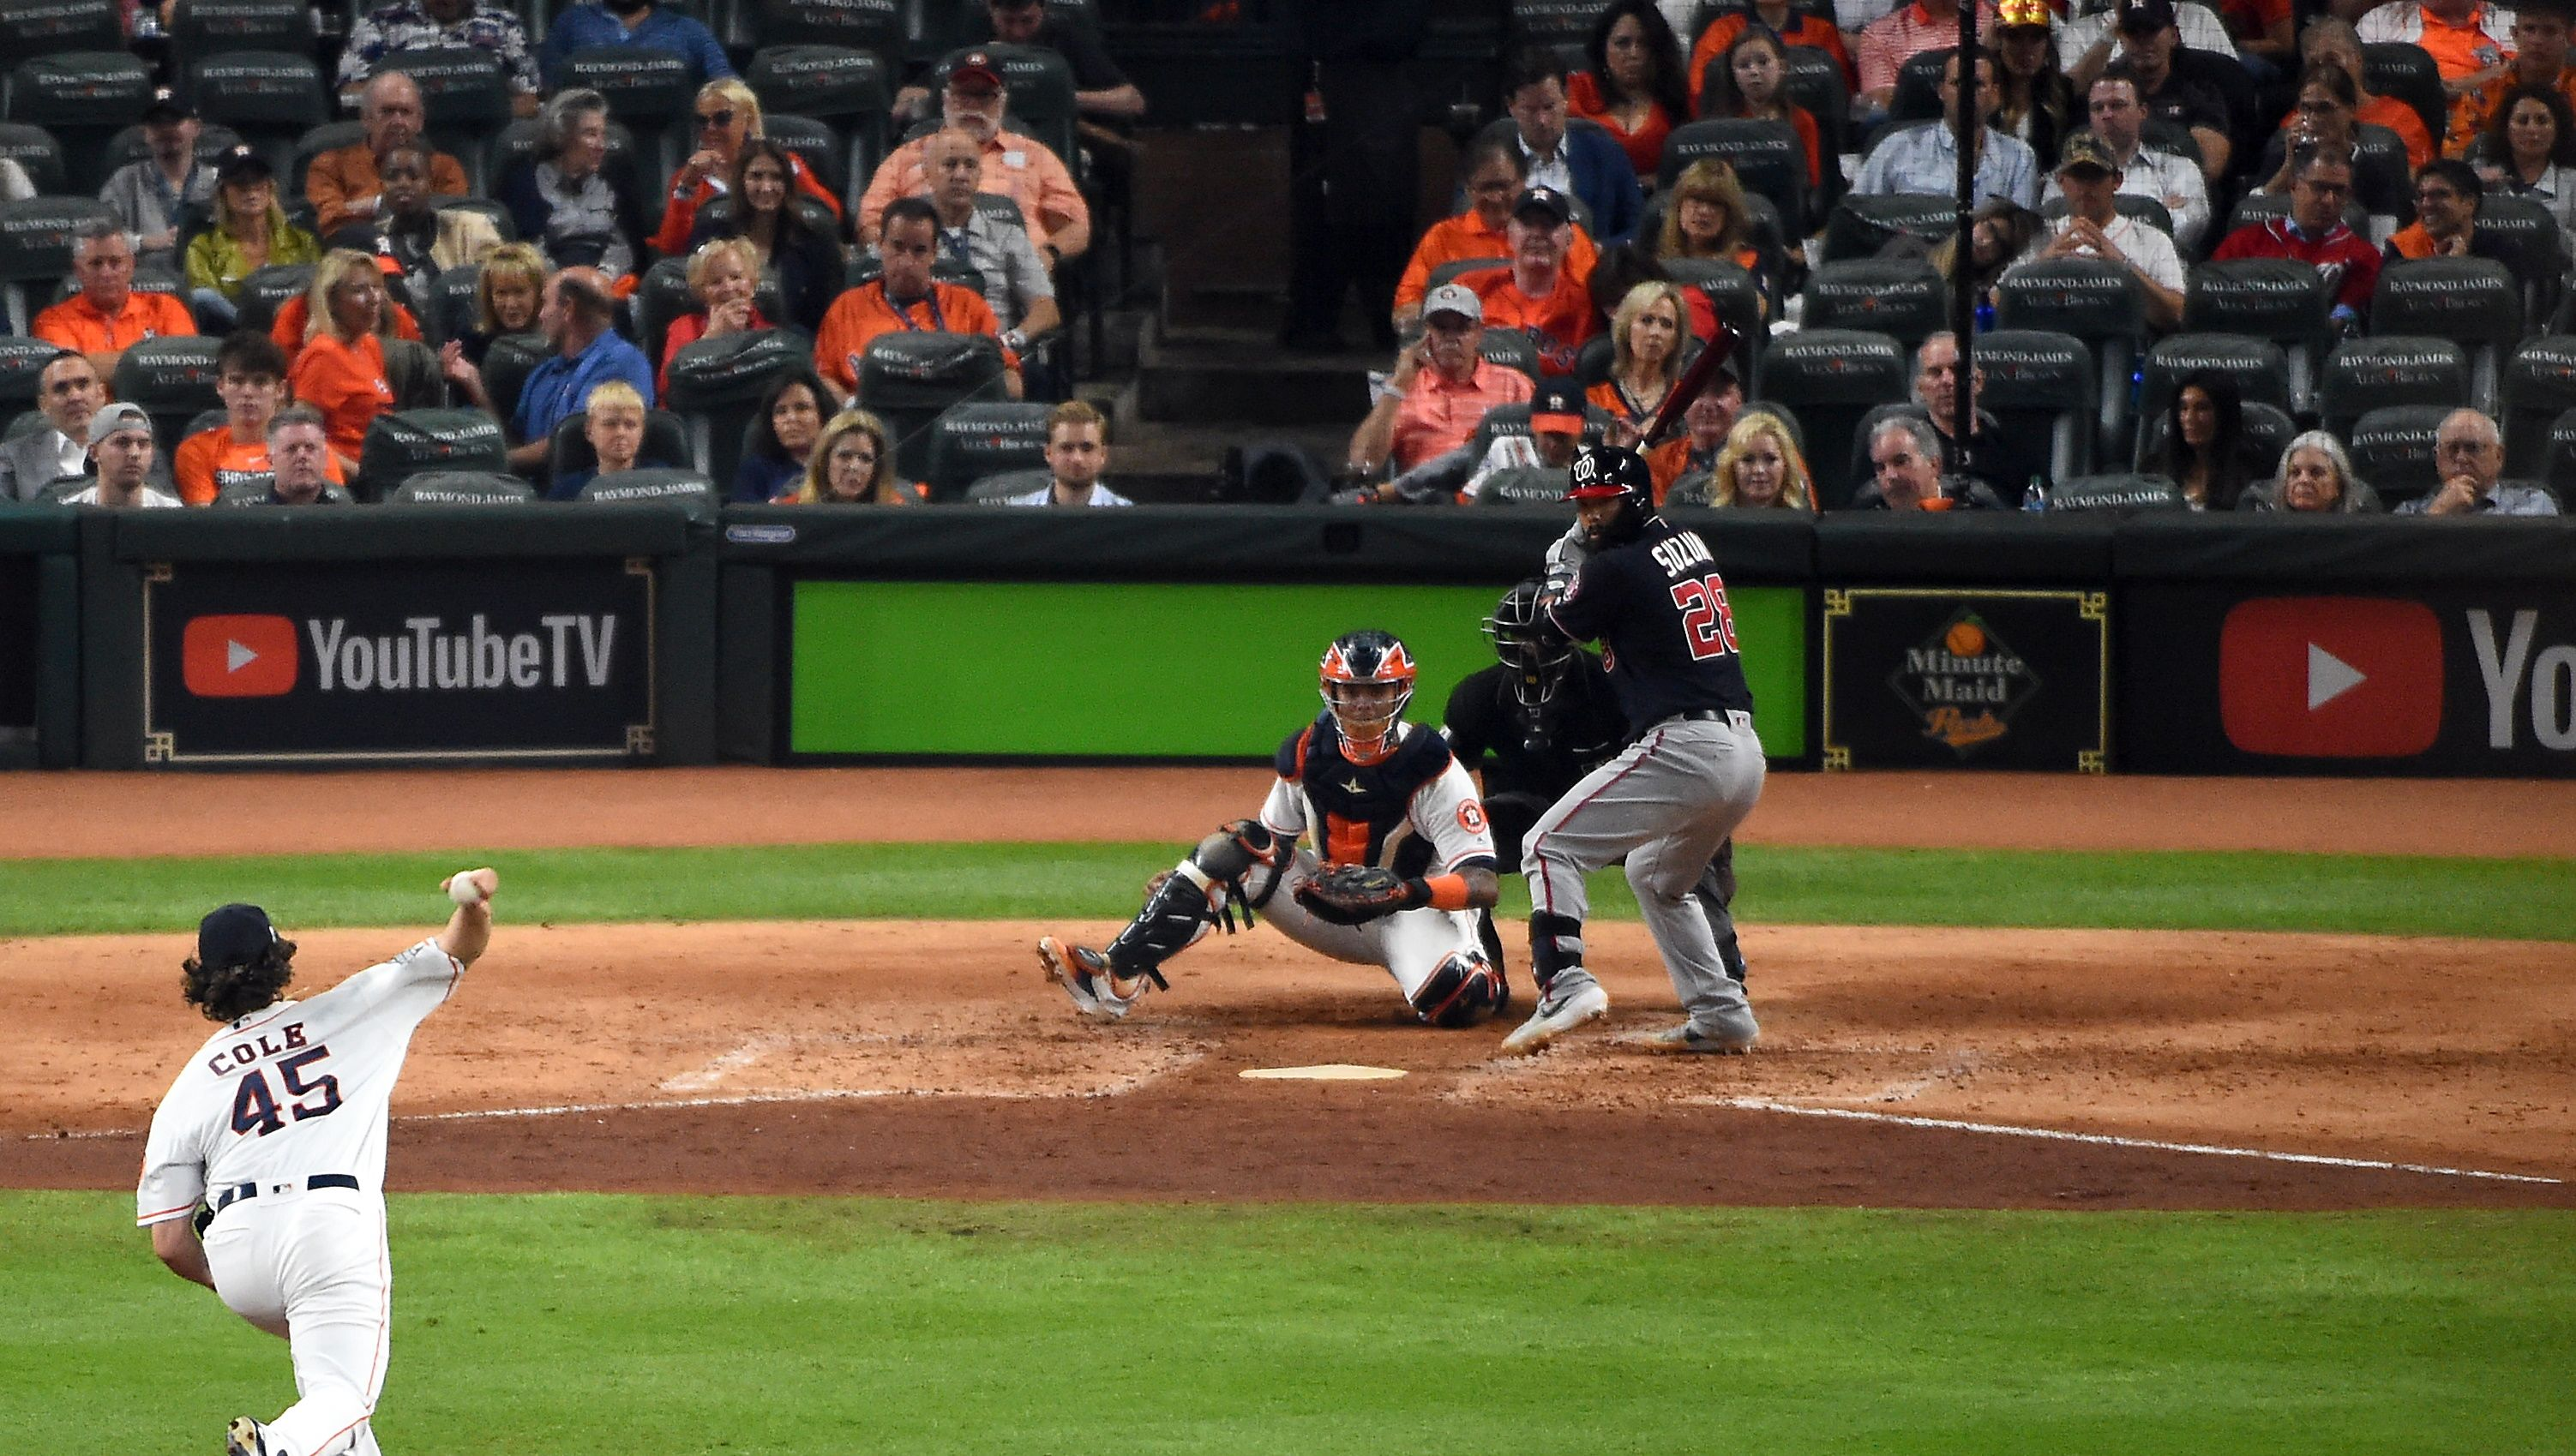 World Series 2019 live stream how to watch Nationals vs